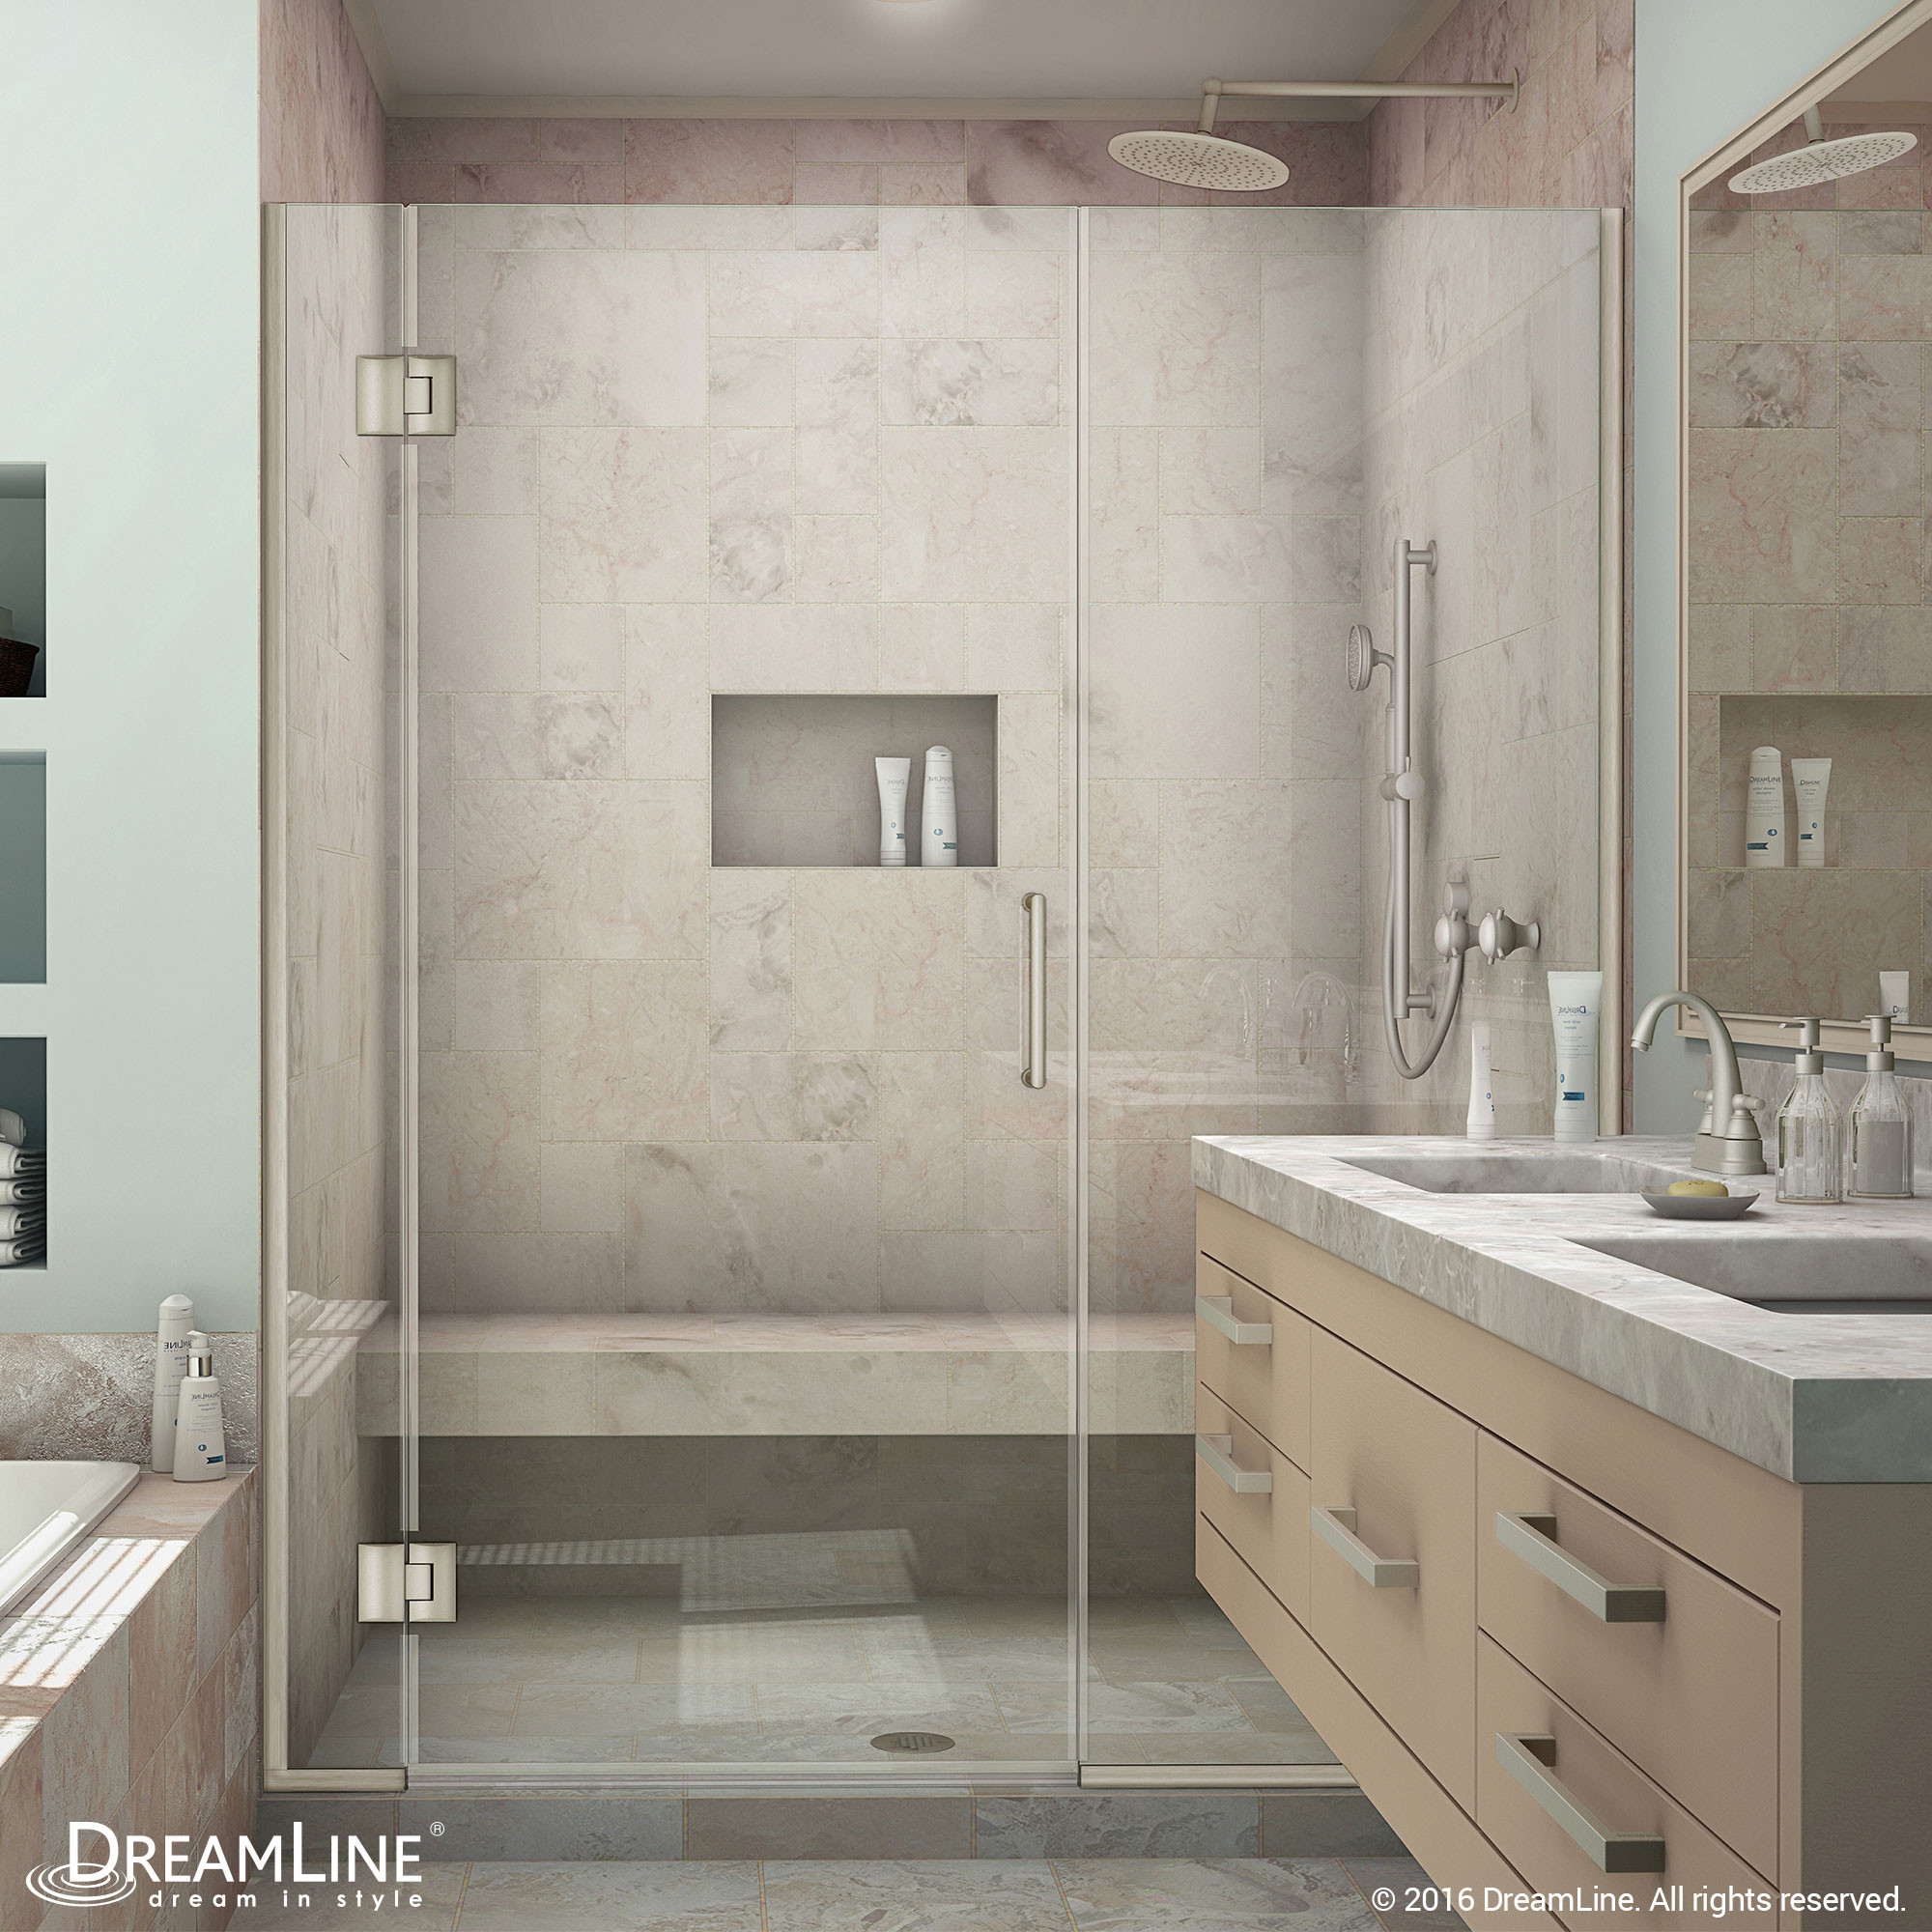 DreamLine D12806572-04 Brushed Nickel Unidoor-X 40 1/2 - 41 in. W x 72 in. H Hinged Shower Door